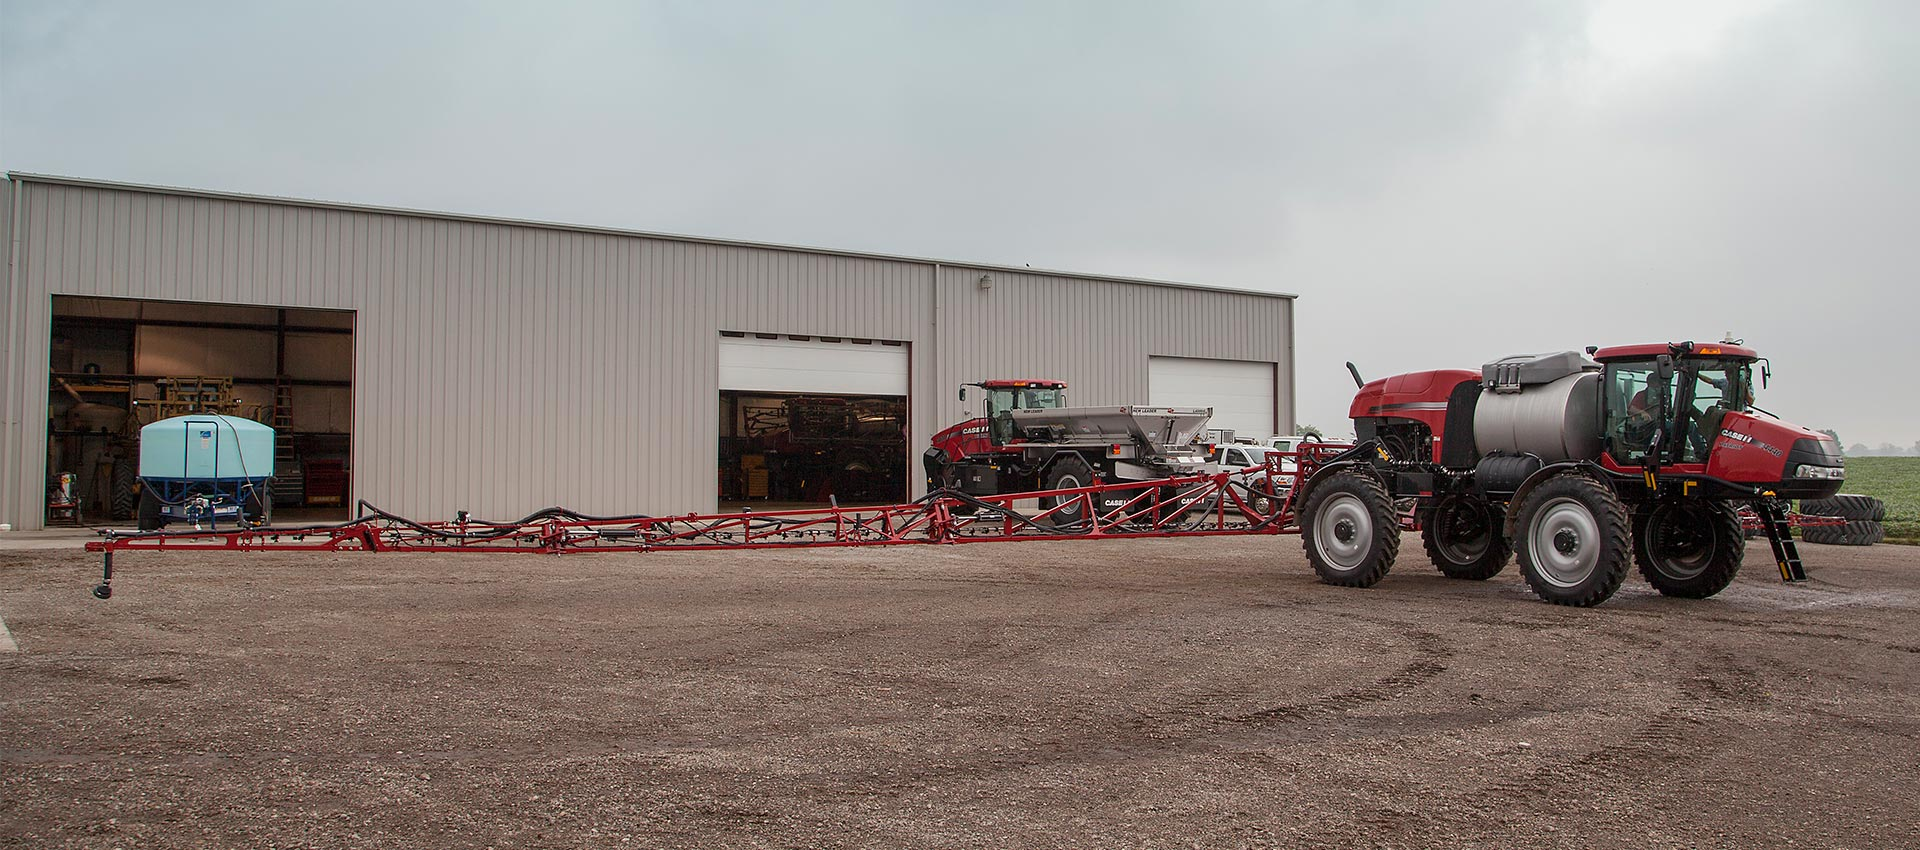 Case IH tractor with sprayer